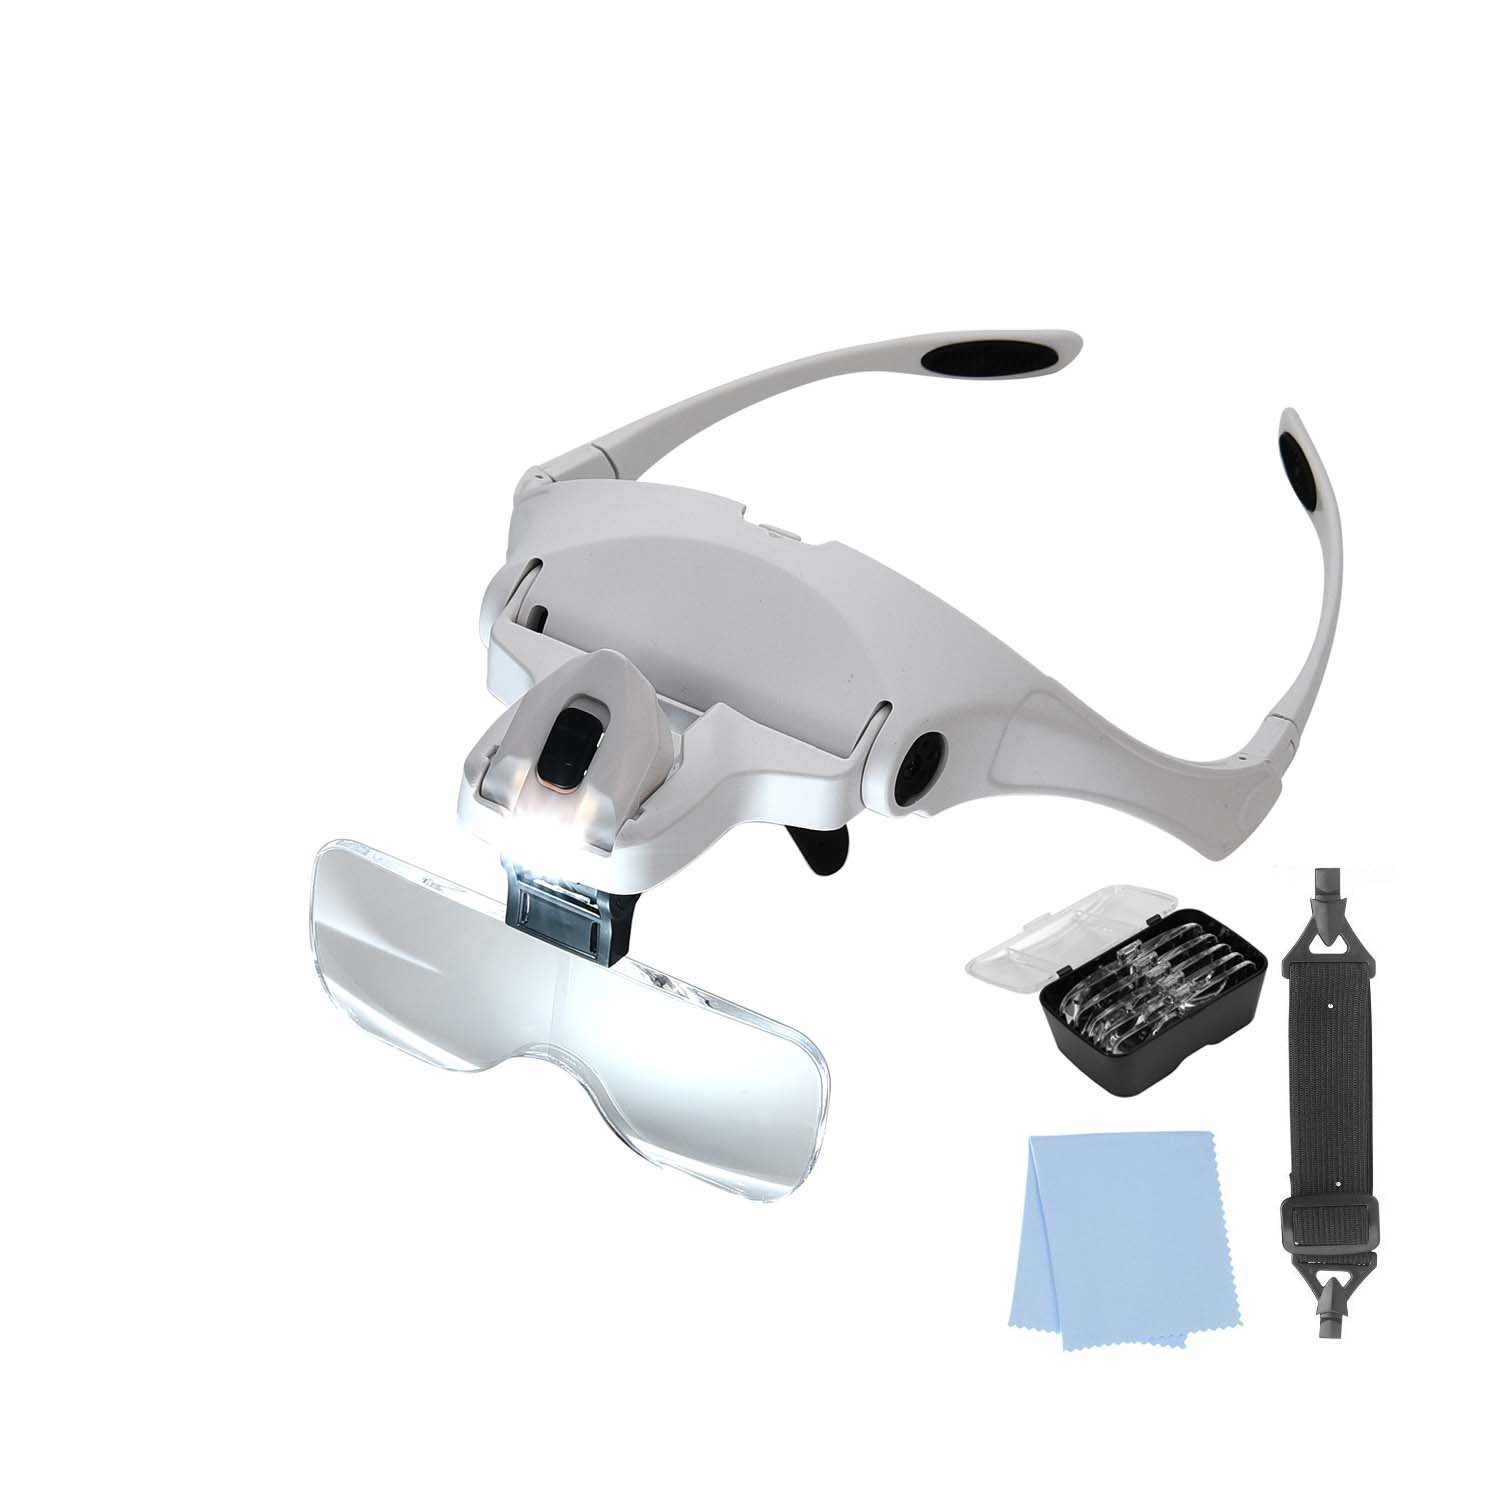 Lighted Headset Magnifying Glasses with lights Head Magnifier Loupe Headband for Close Work/Electronics/Eyelash/Crafts/Jewelry/Circuit Watch Repair,1.0X/1.5X/2.0X/2.5X/3.5X by MORDUEDDE (Image #8)